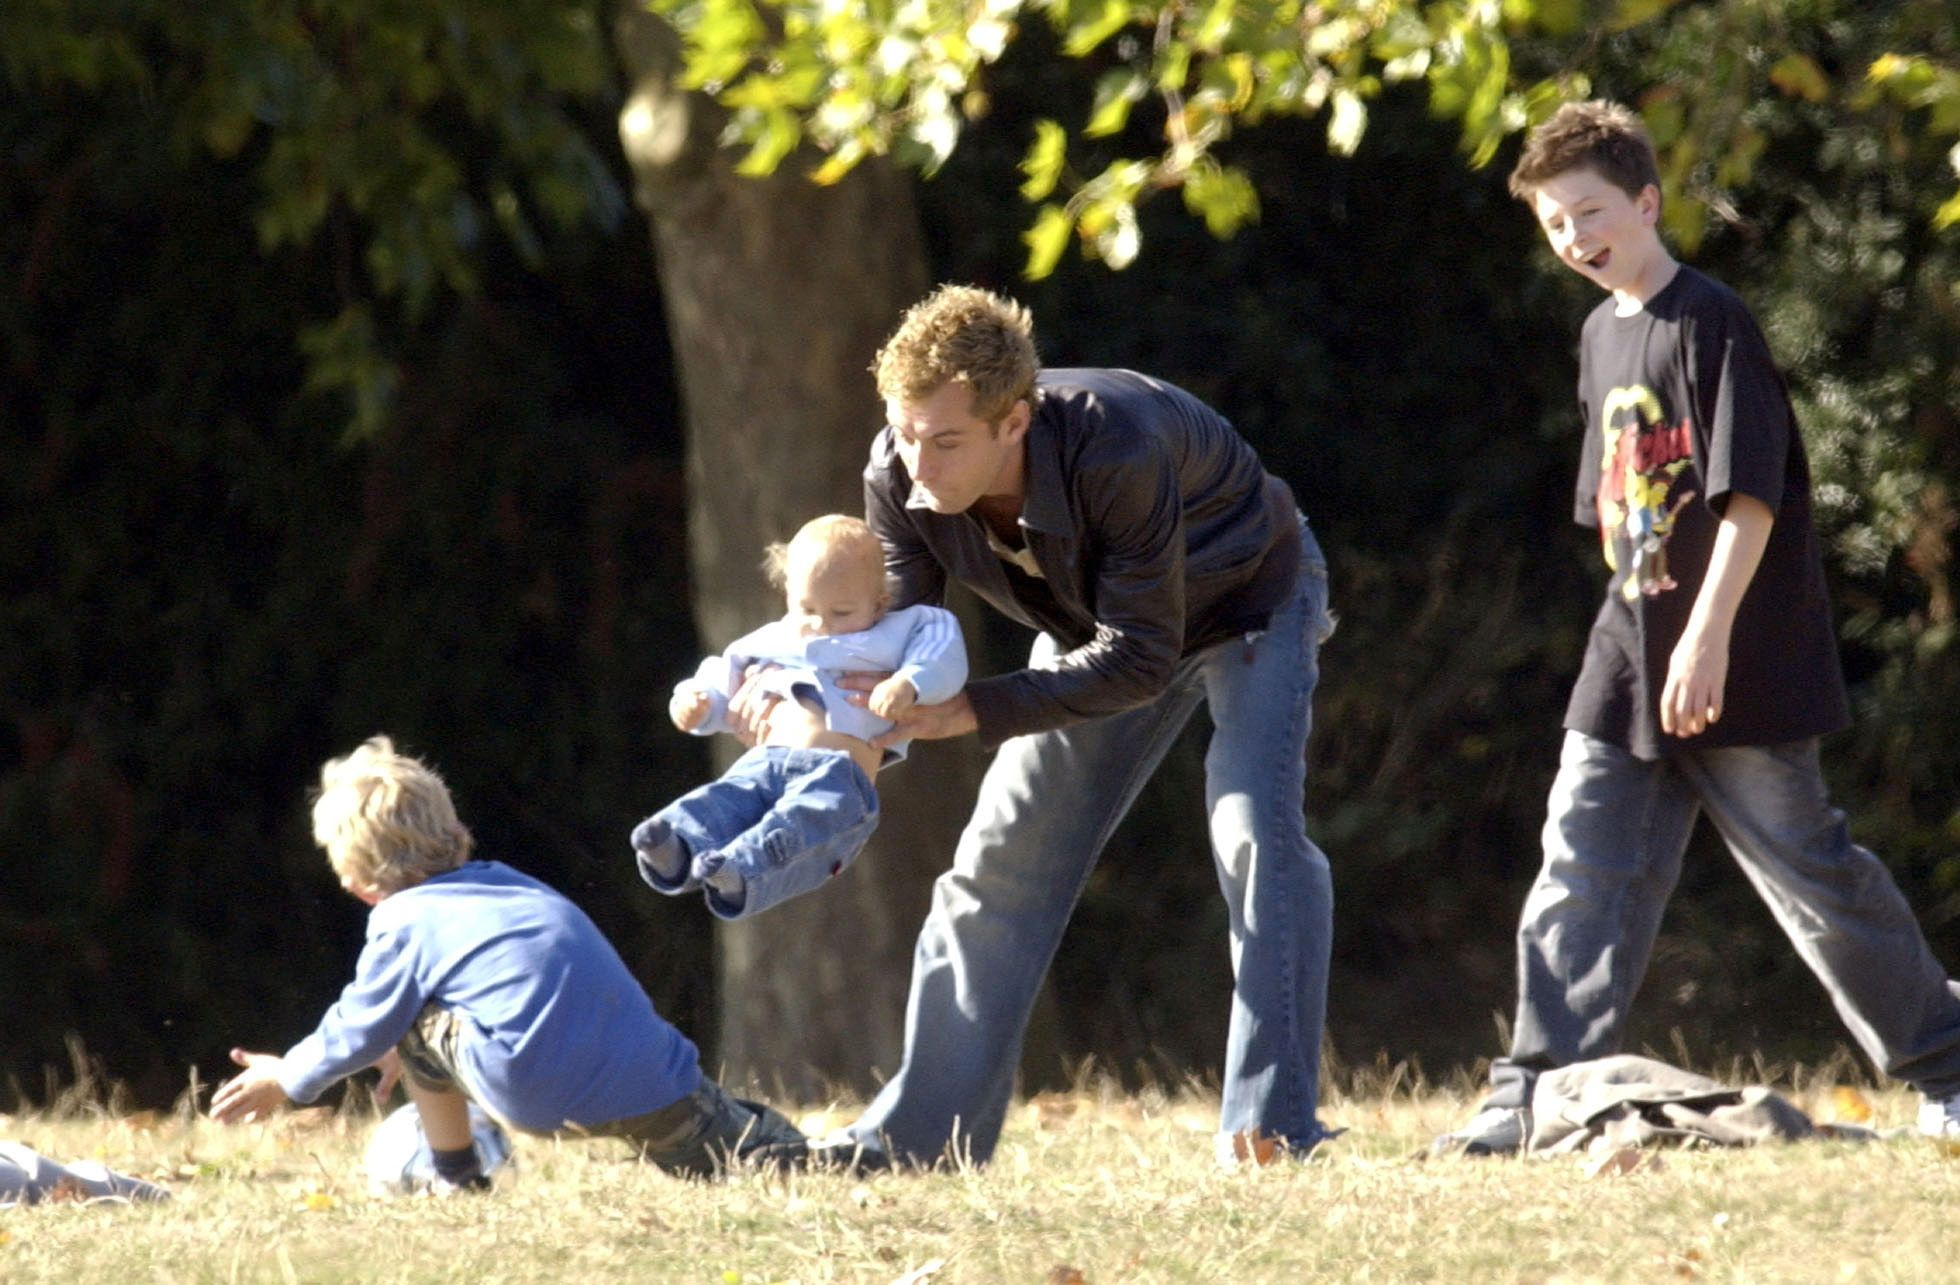 Jude Law And Children In A London Park on October 06, 2003 | Photo: Getty Images